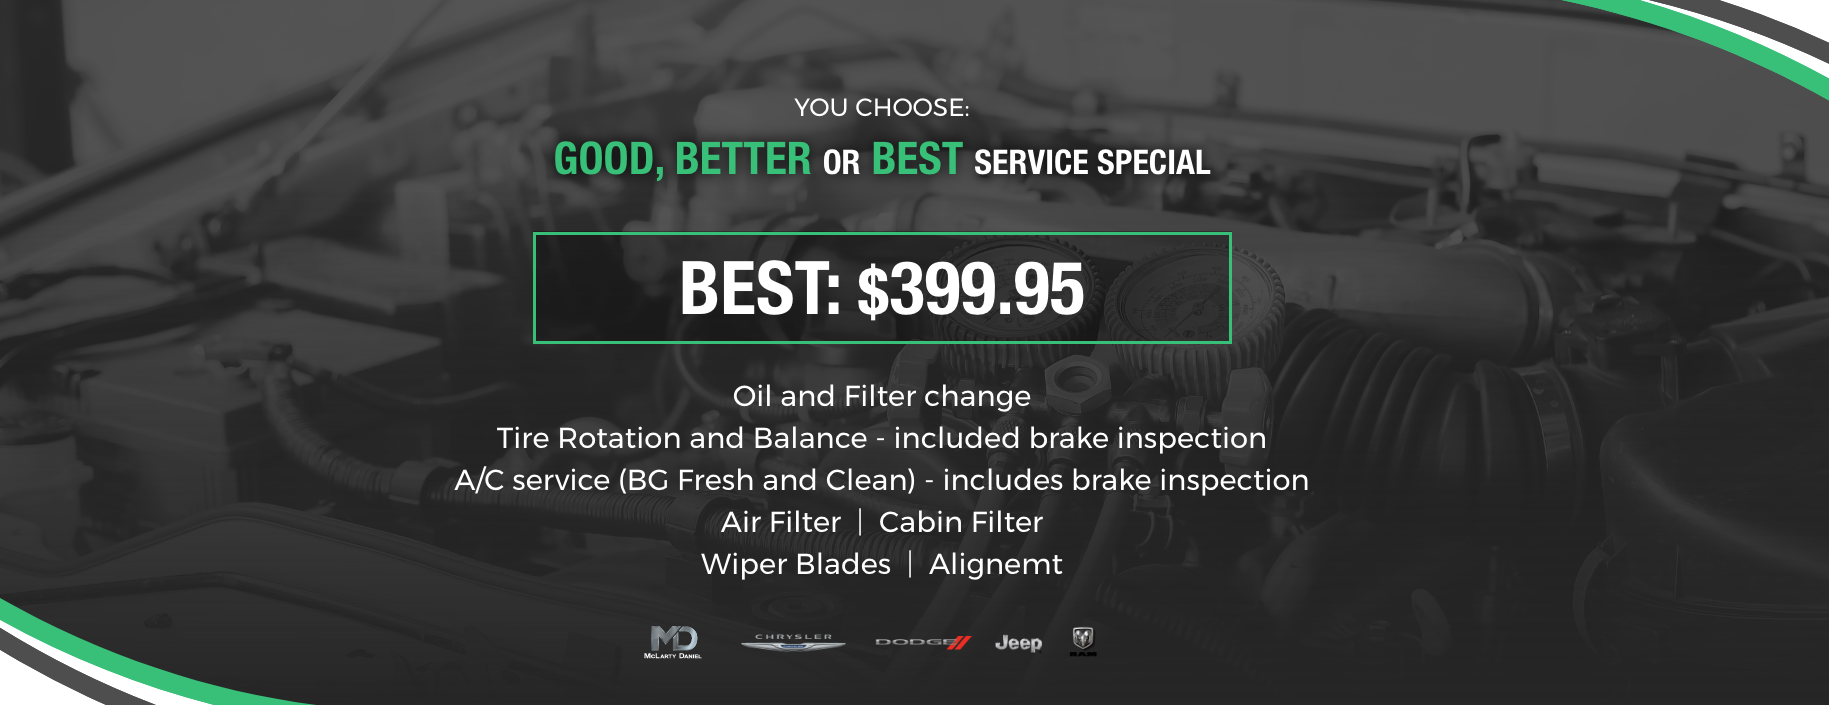 You Choose Service Special: Best